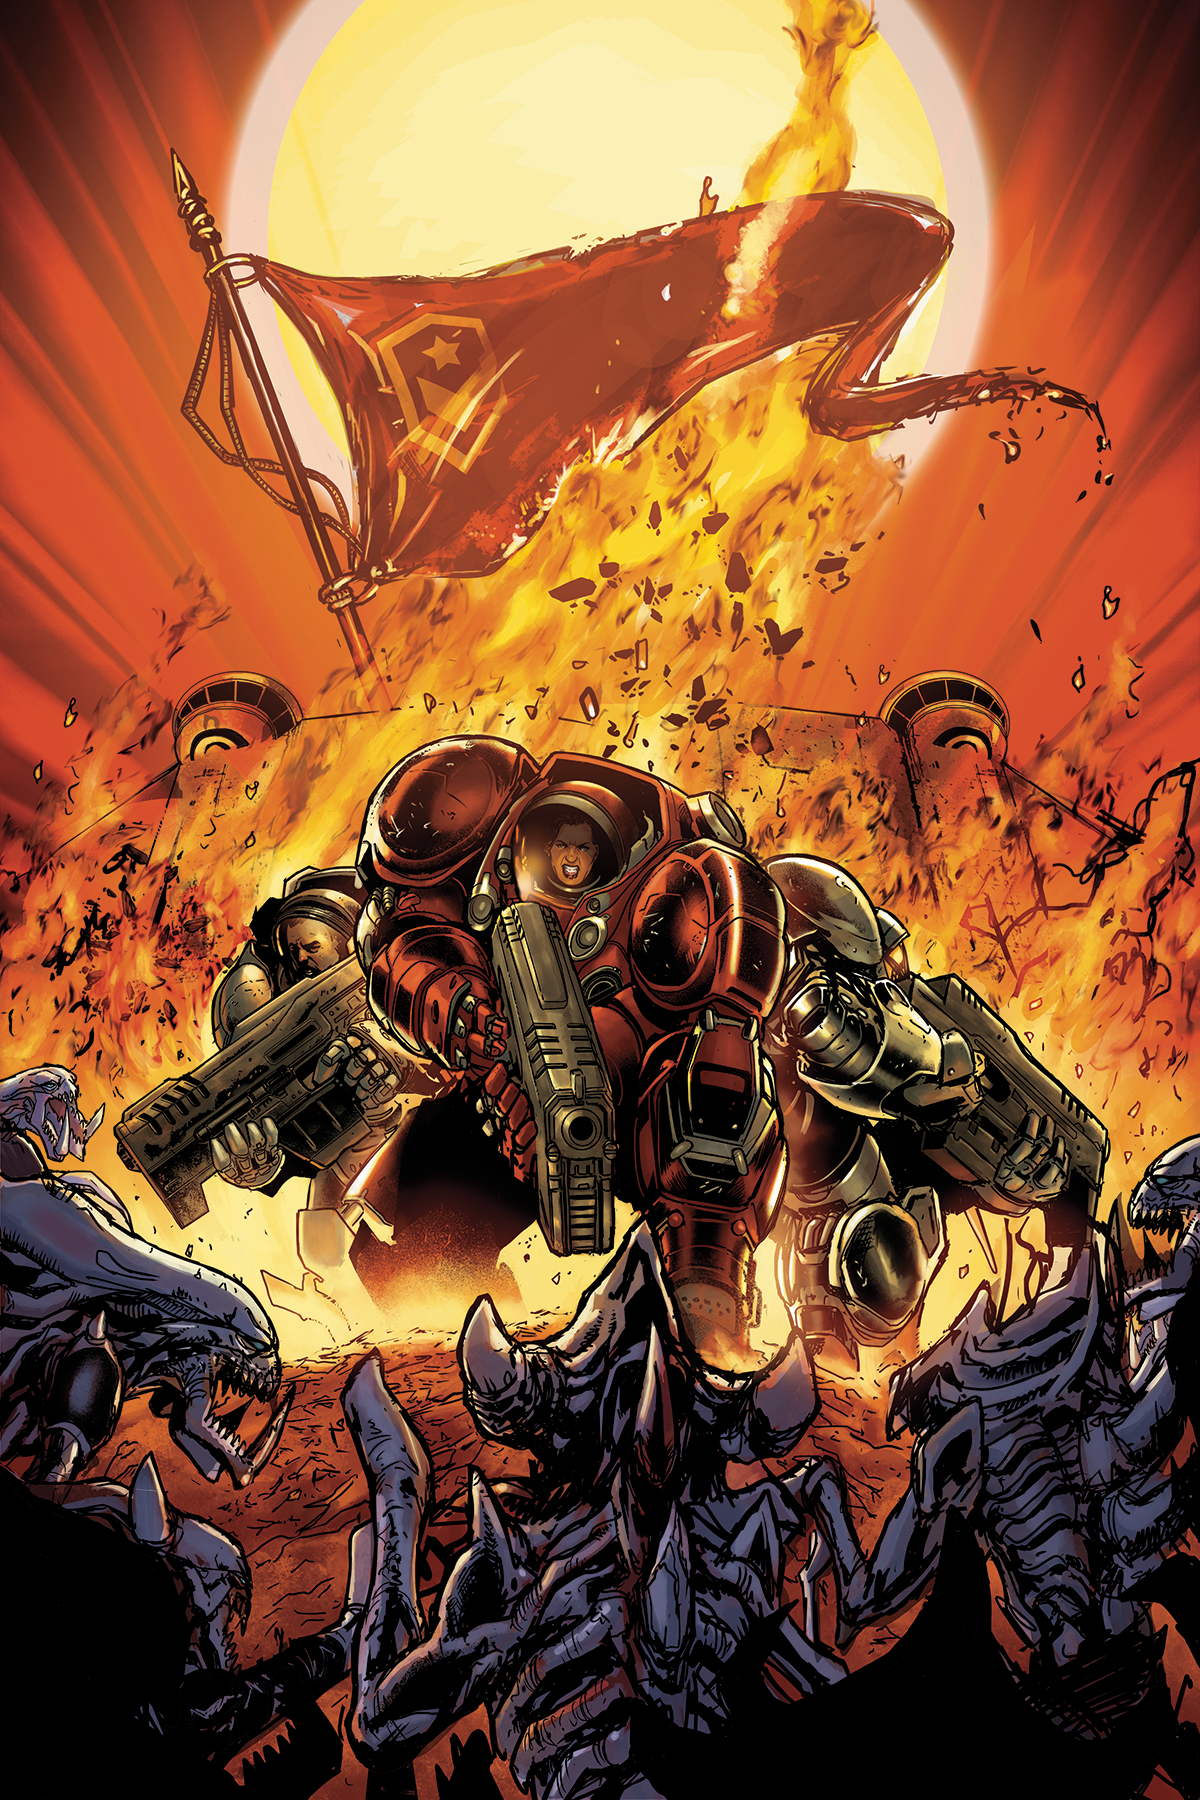 STARCRAFT SOLDIERS #1 (OF 4)